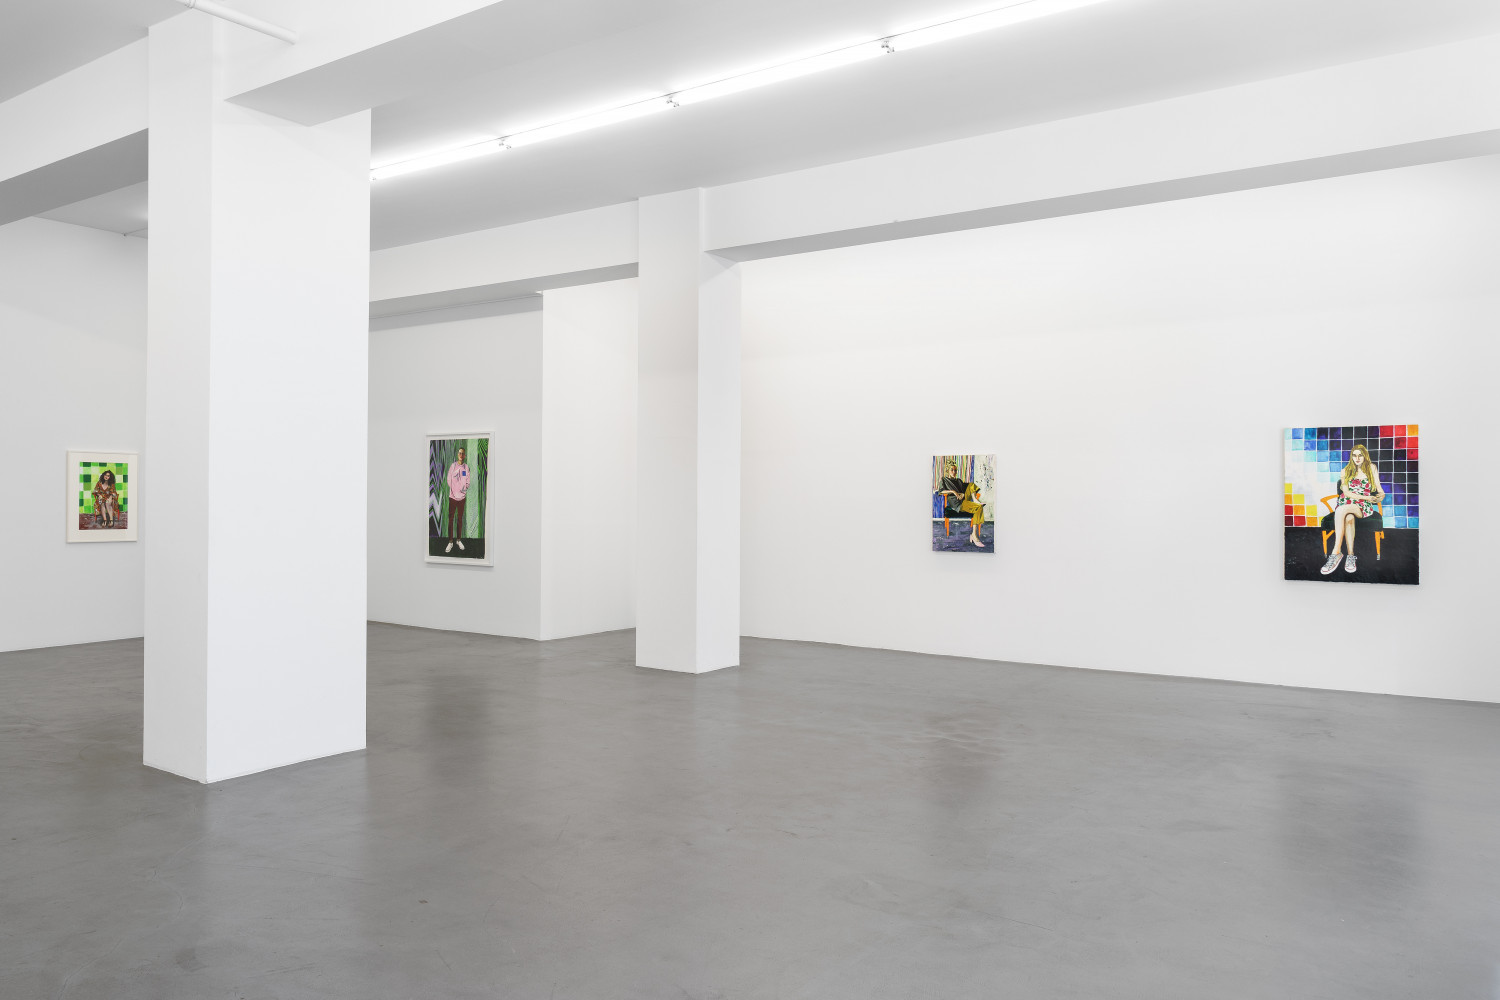 Raffi Kalenderian, 'Always in Rare Form', Installation view, Buchmann Galerie, 2018